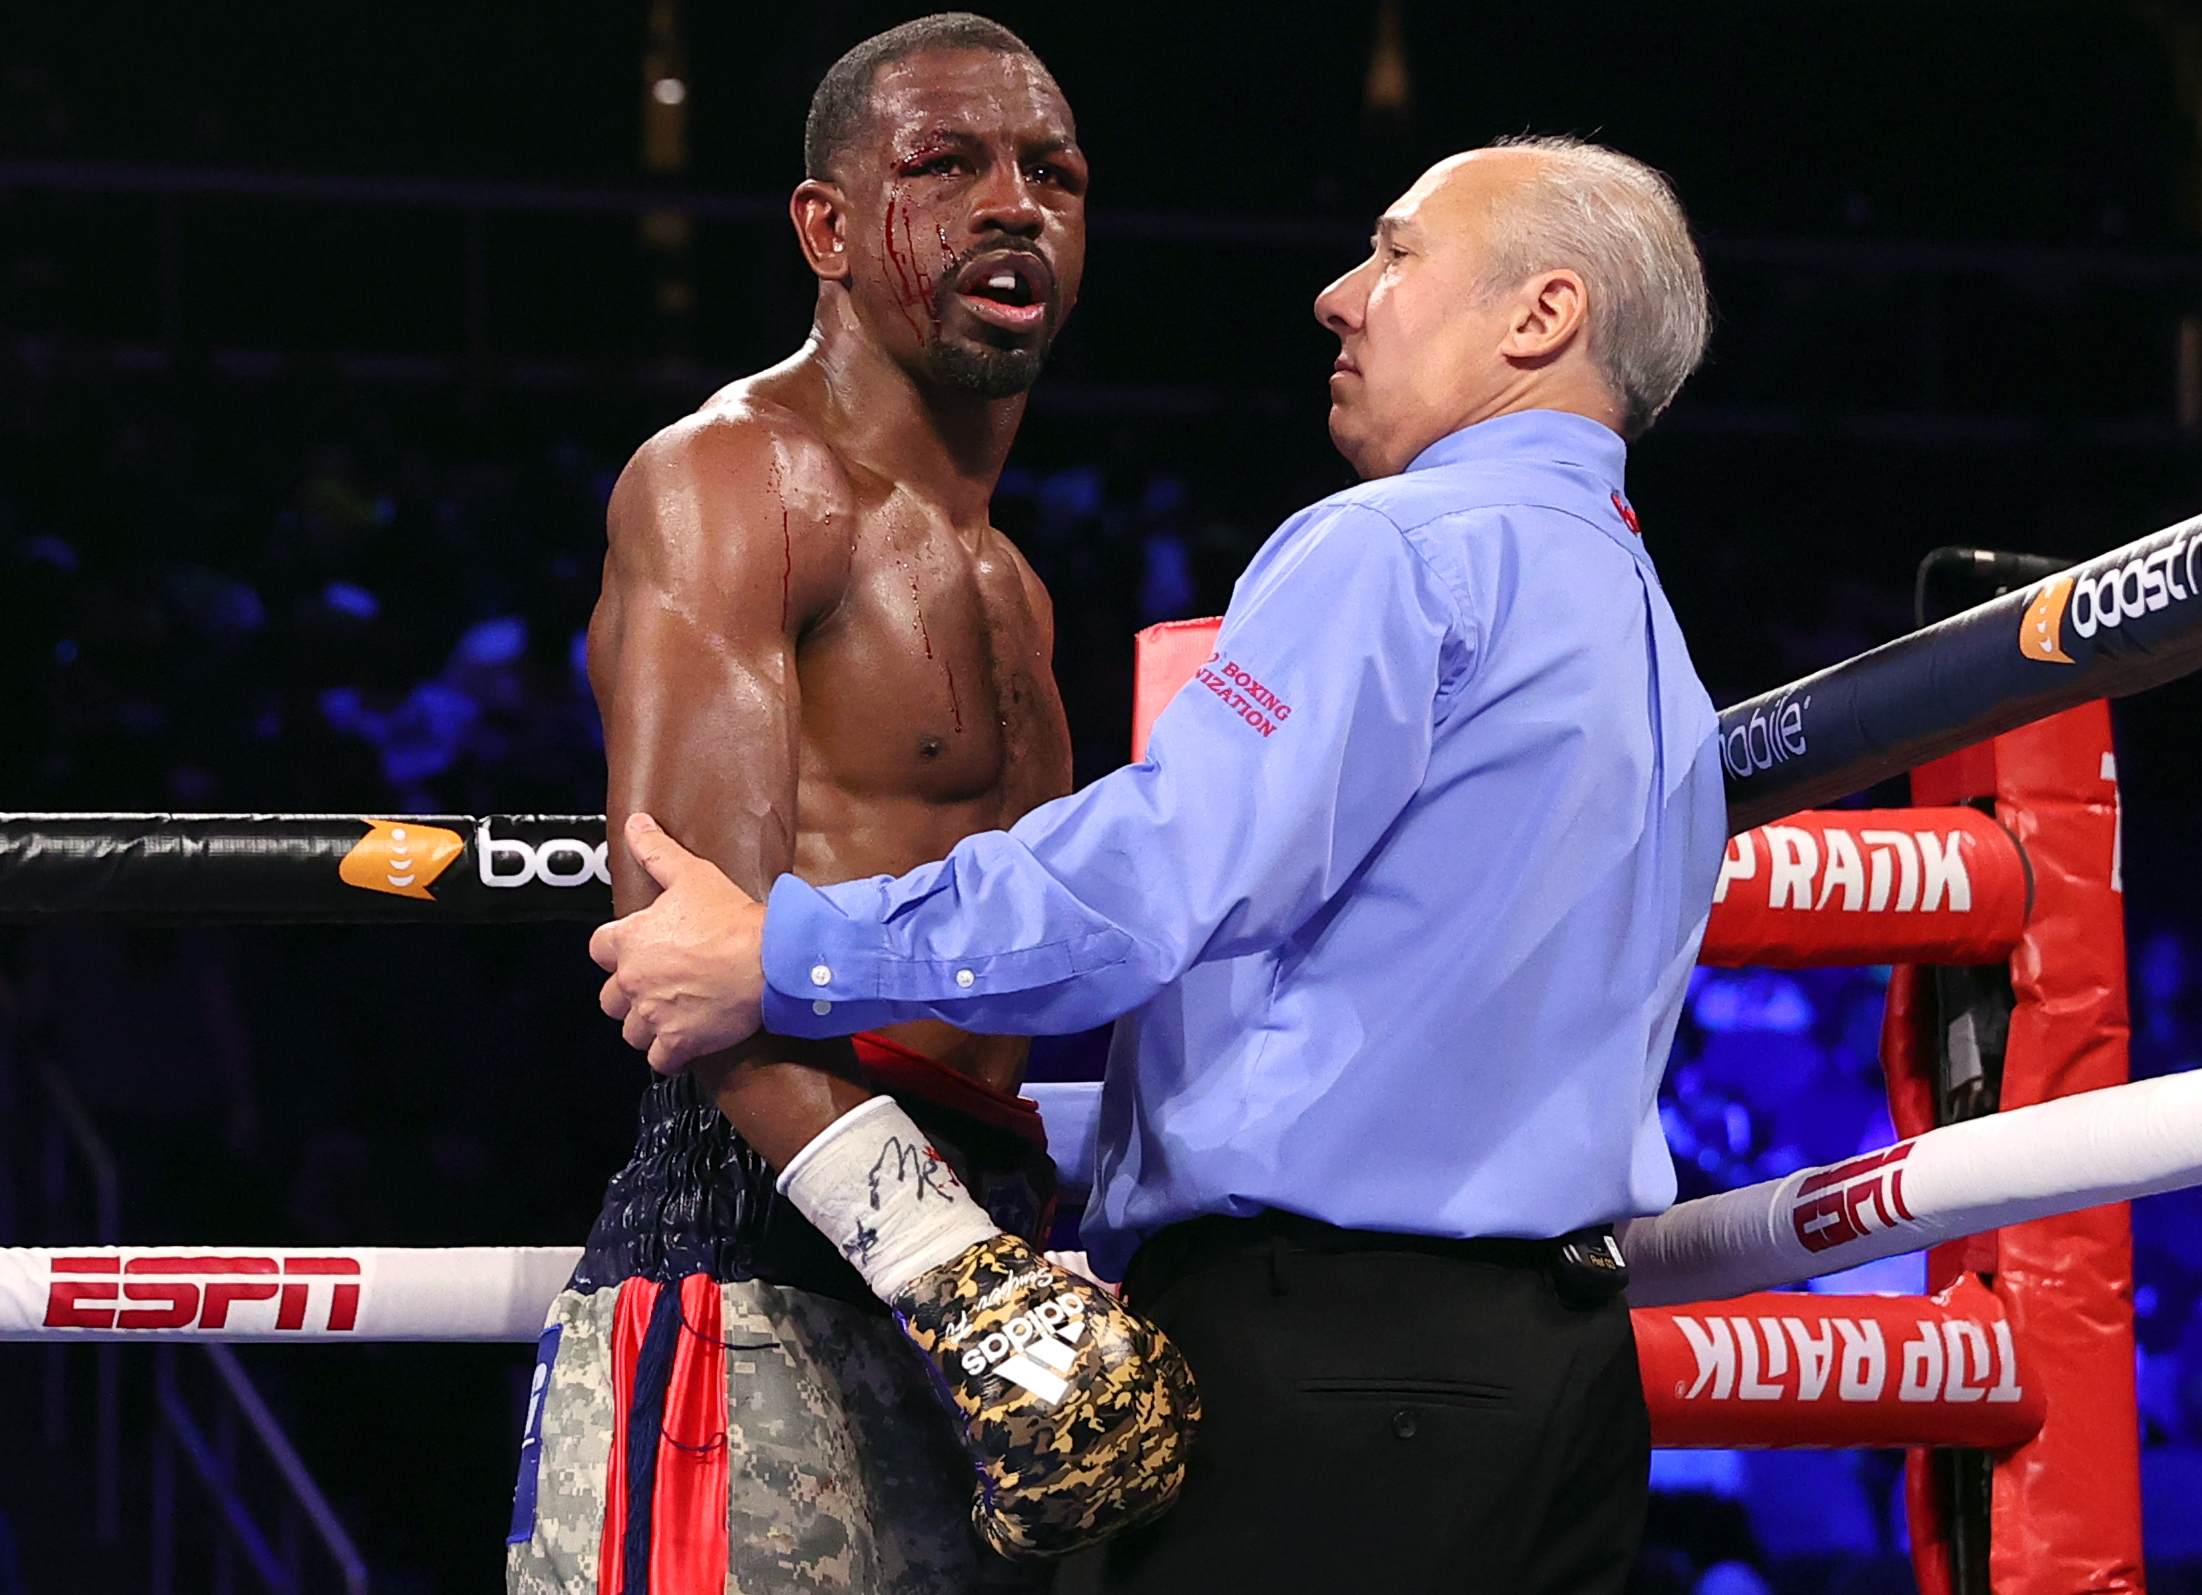 Jamel Herring is considering his next move after defeat against Shakur Stevenson